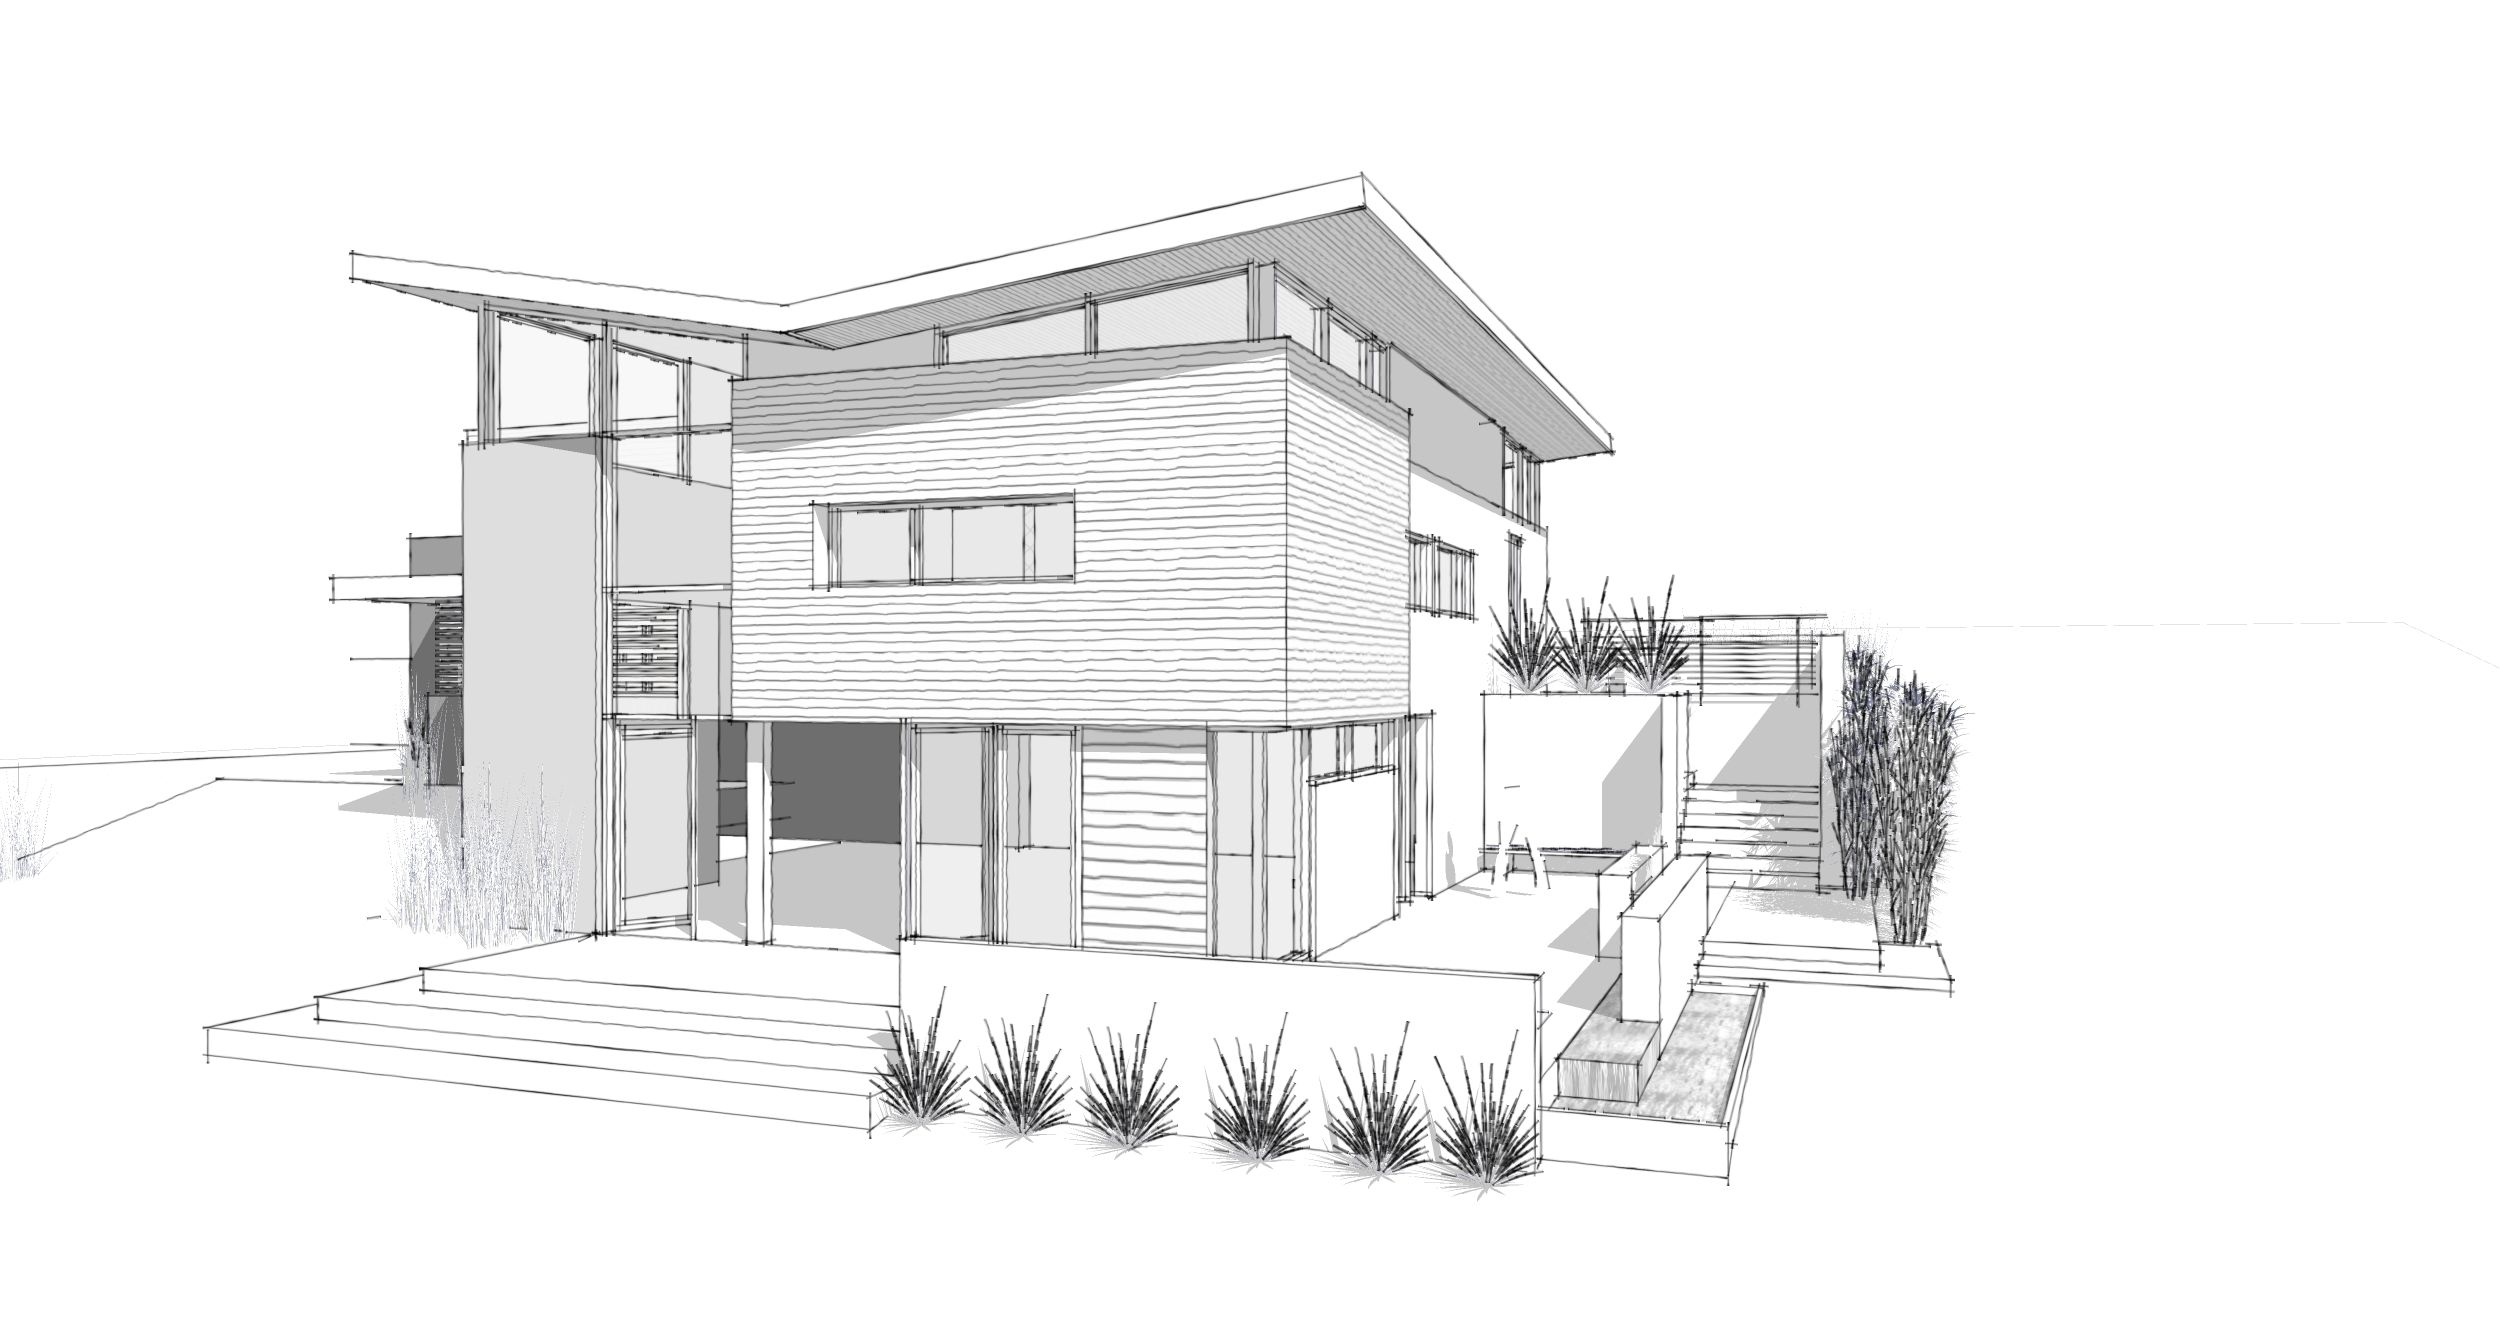 Modern home architecture sketches design ideas 13435 for Architecture design house plan